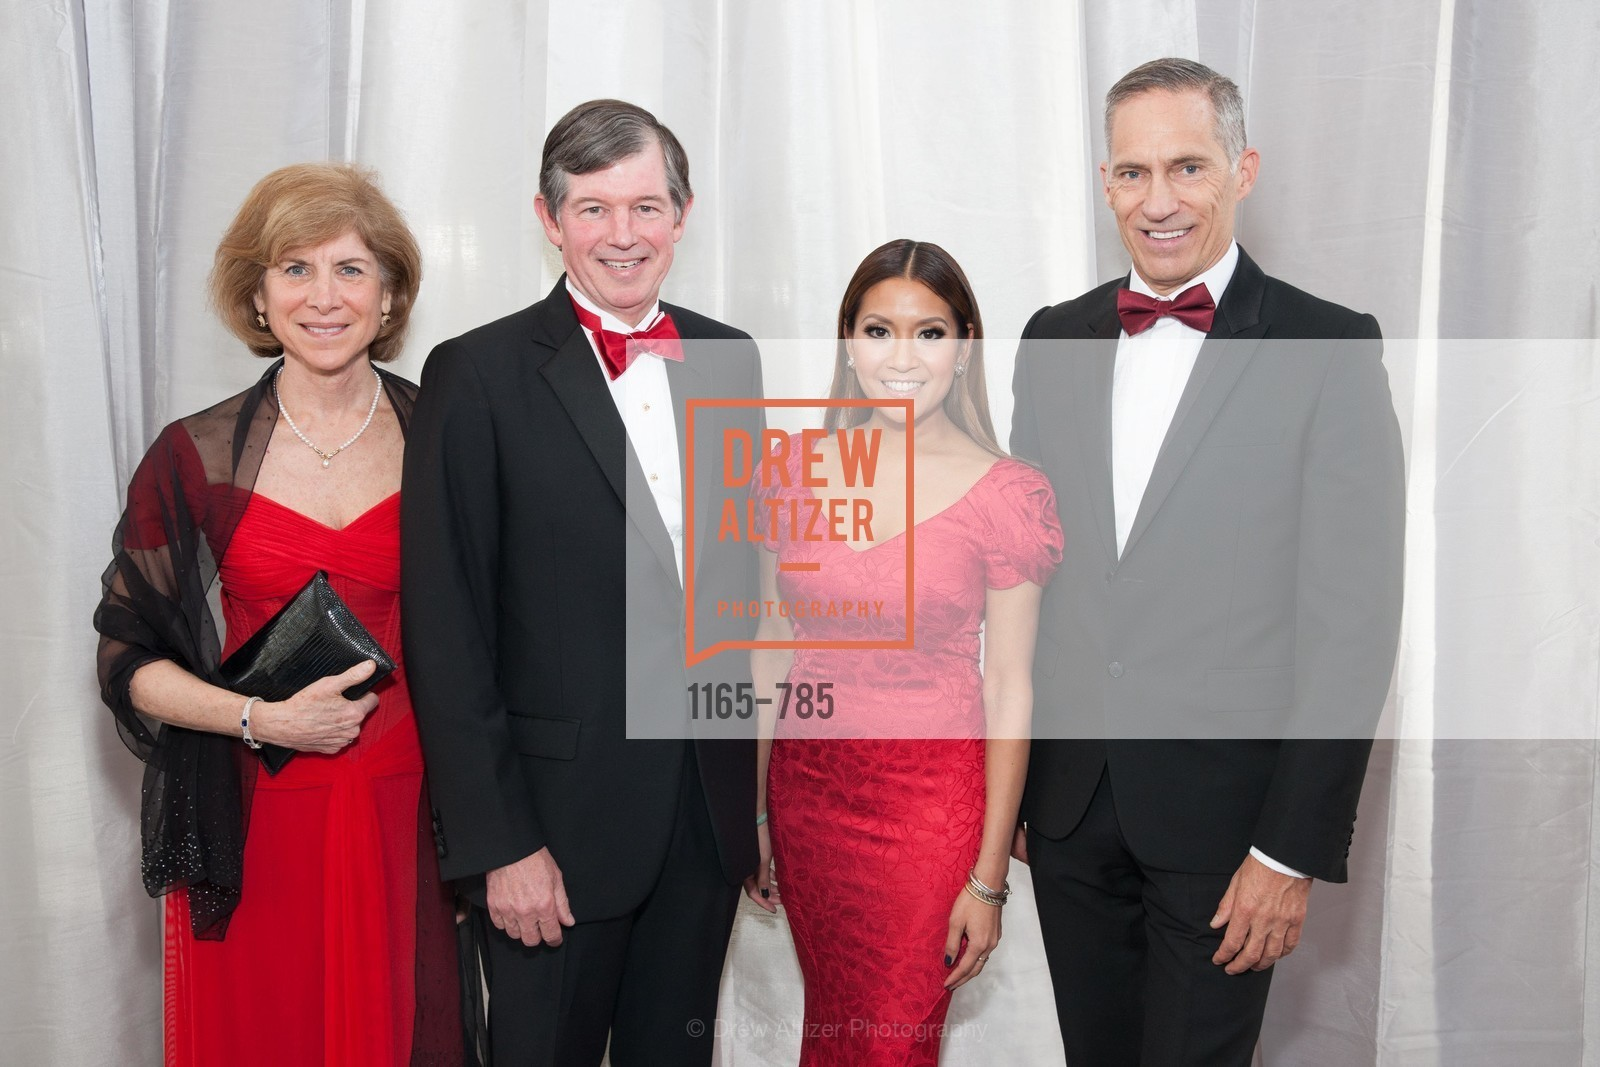 Gail McGovern, Anthony Earley, Lillian Phan, Mark Cloutier, 2015 RED CROSS Gala, US, April 11th, 2015,Drew Altizer, Drew Altizer Photography, full-service agency, private events, San Francisco photographer, photographer california